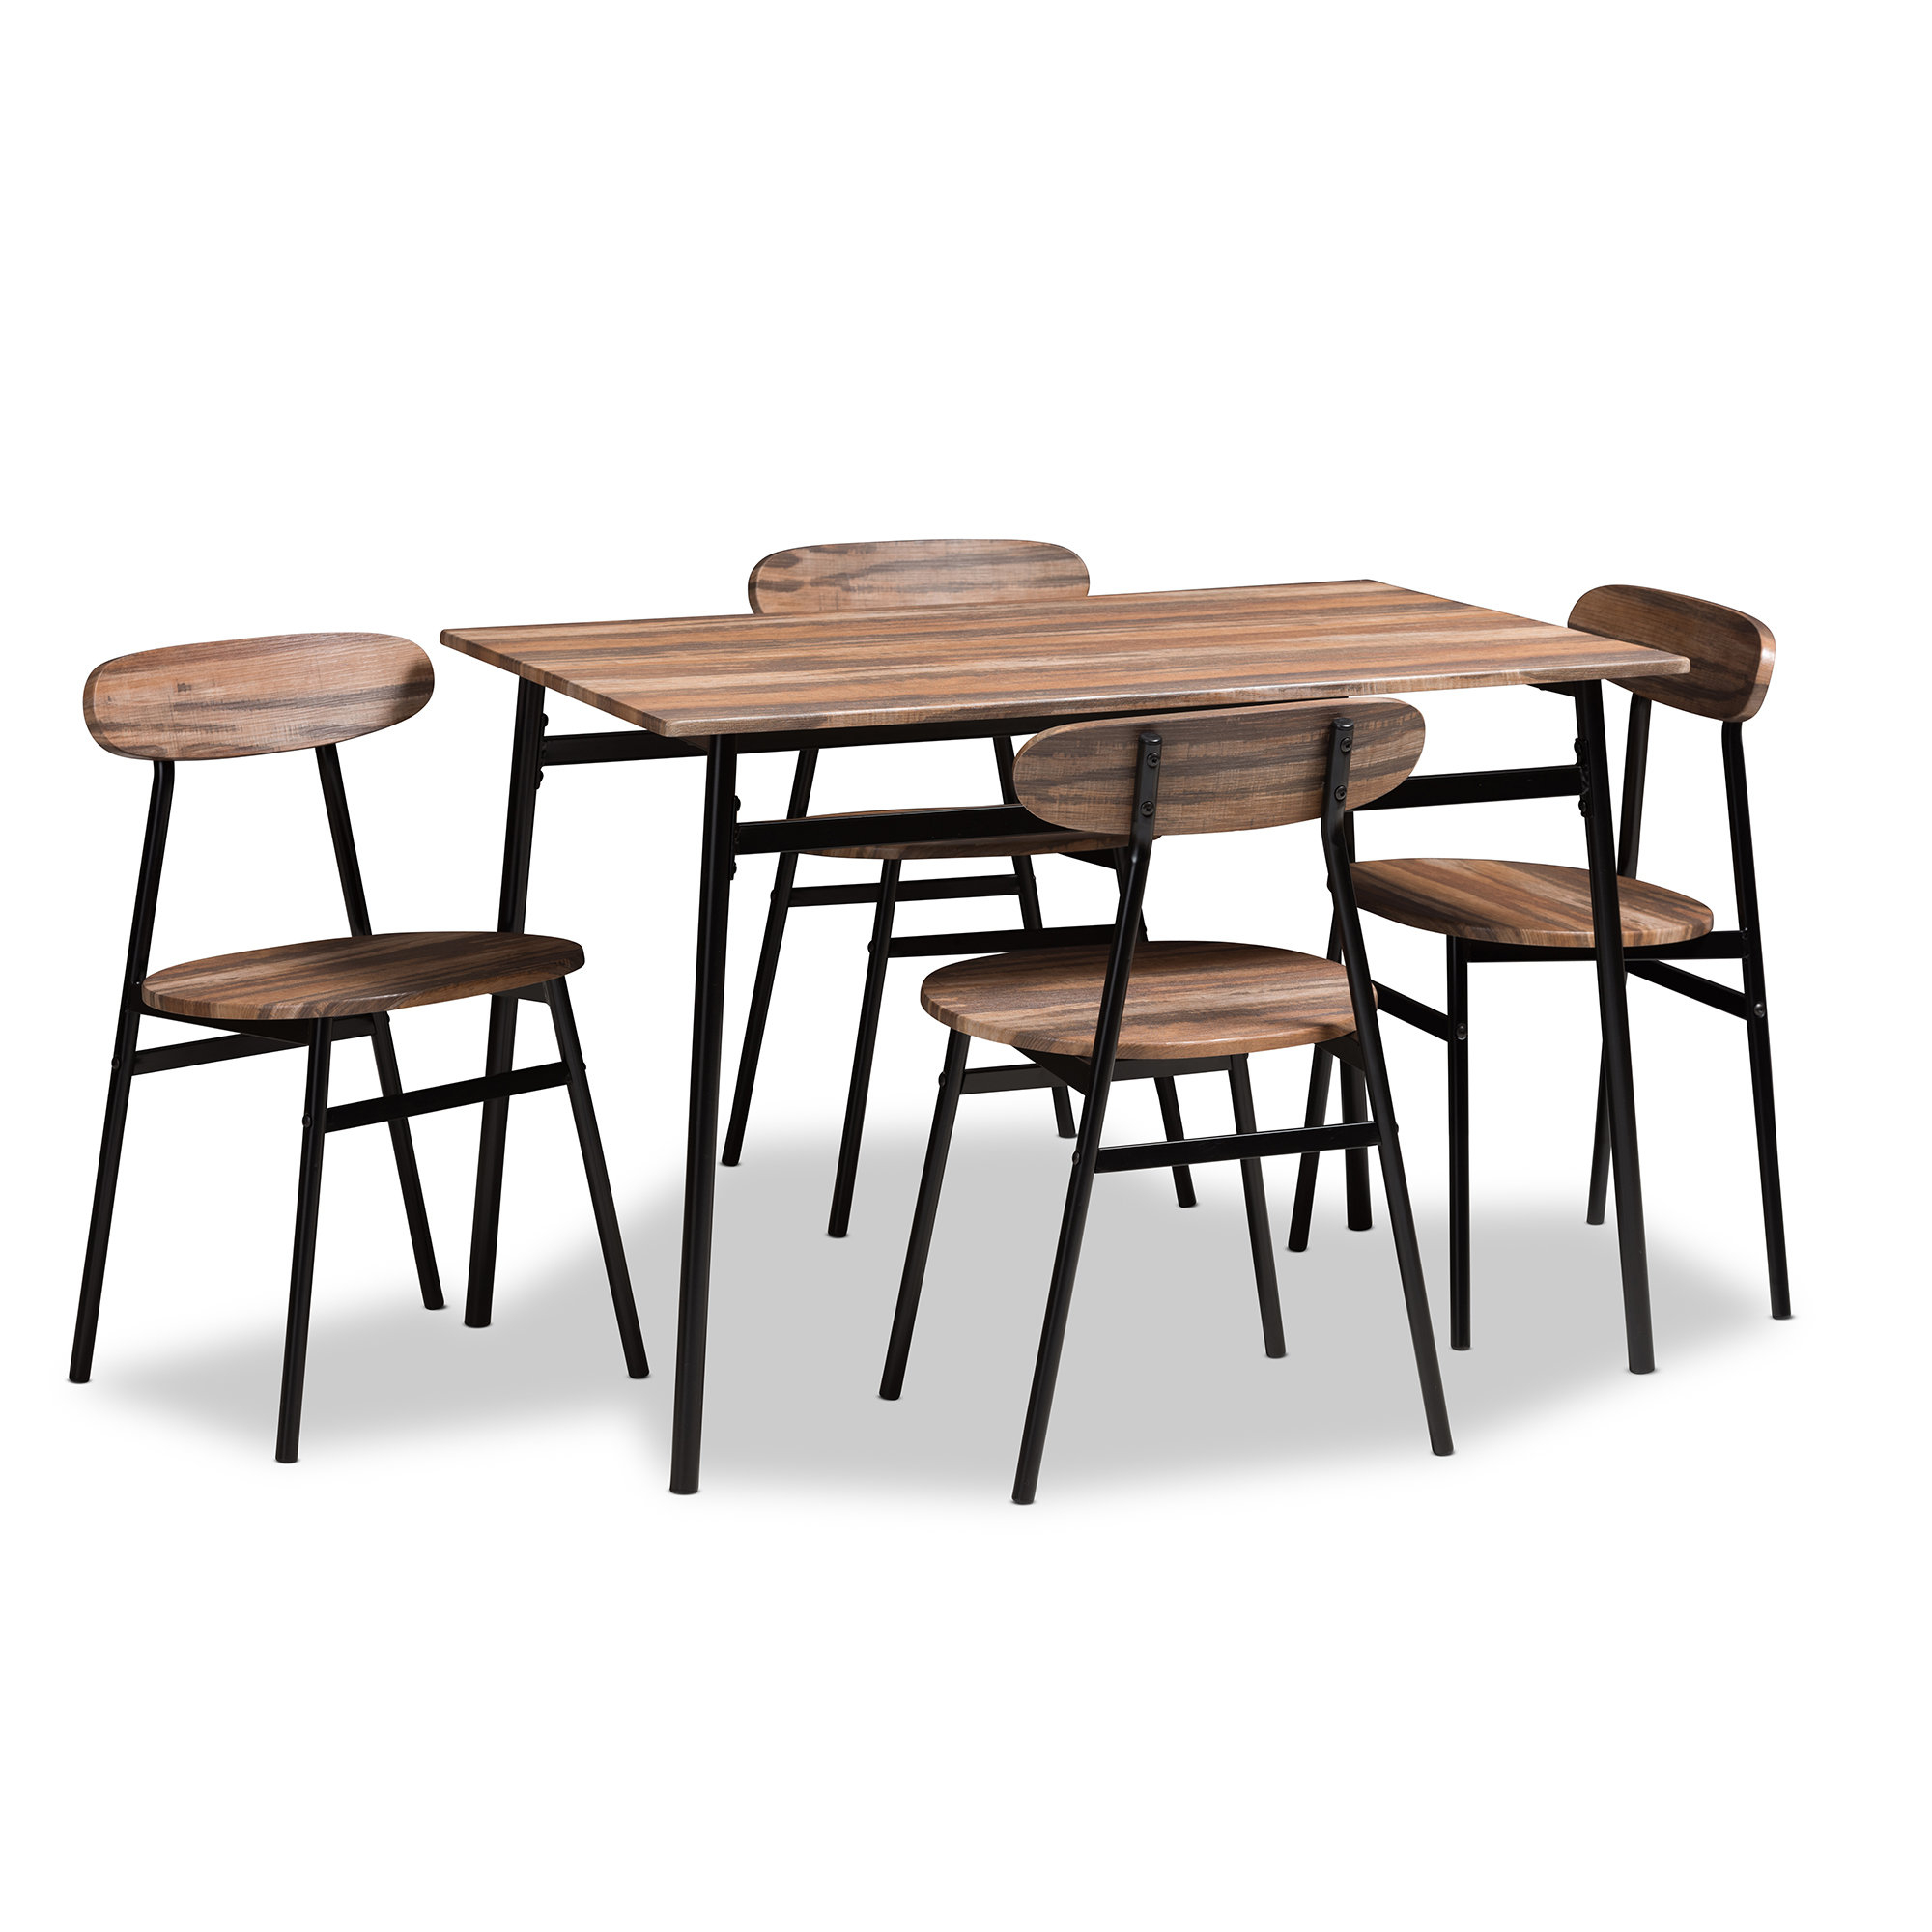 Joss & Main For Popular Askern 3 Piece Counter Height Dining Sets (Set Of 3) (Gallery 17 of 25)